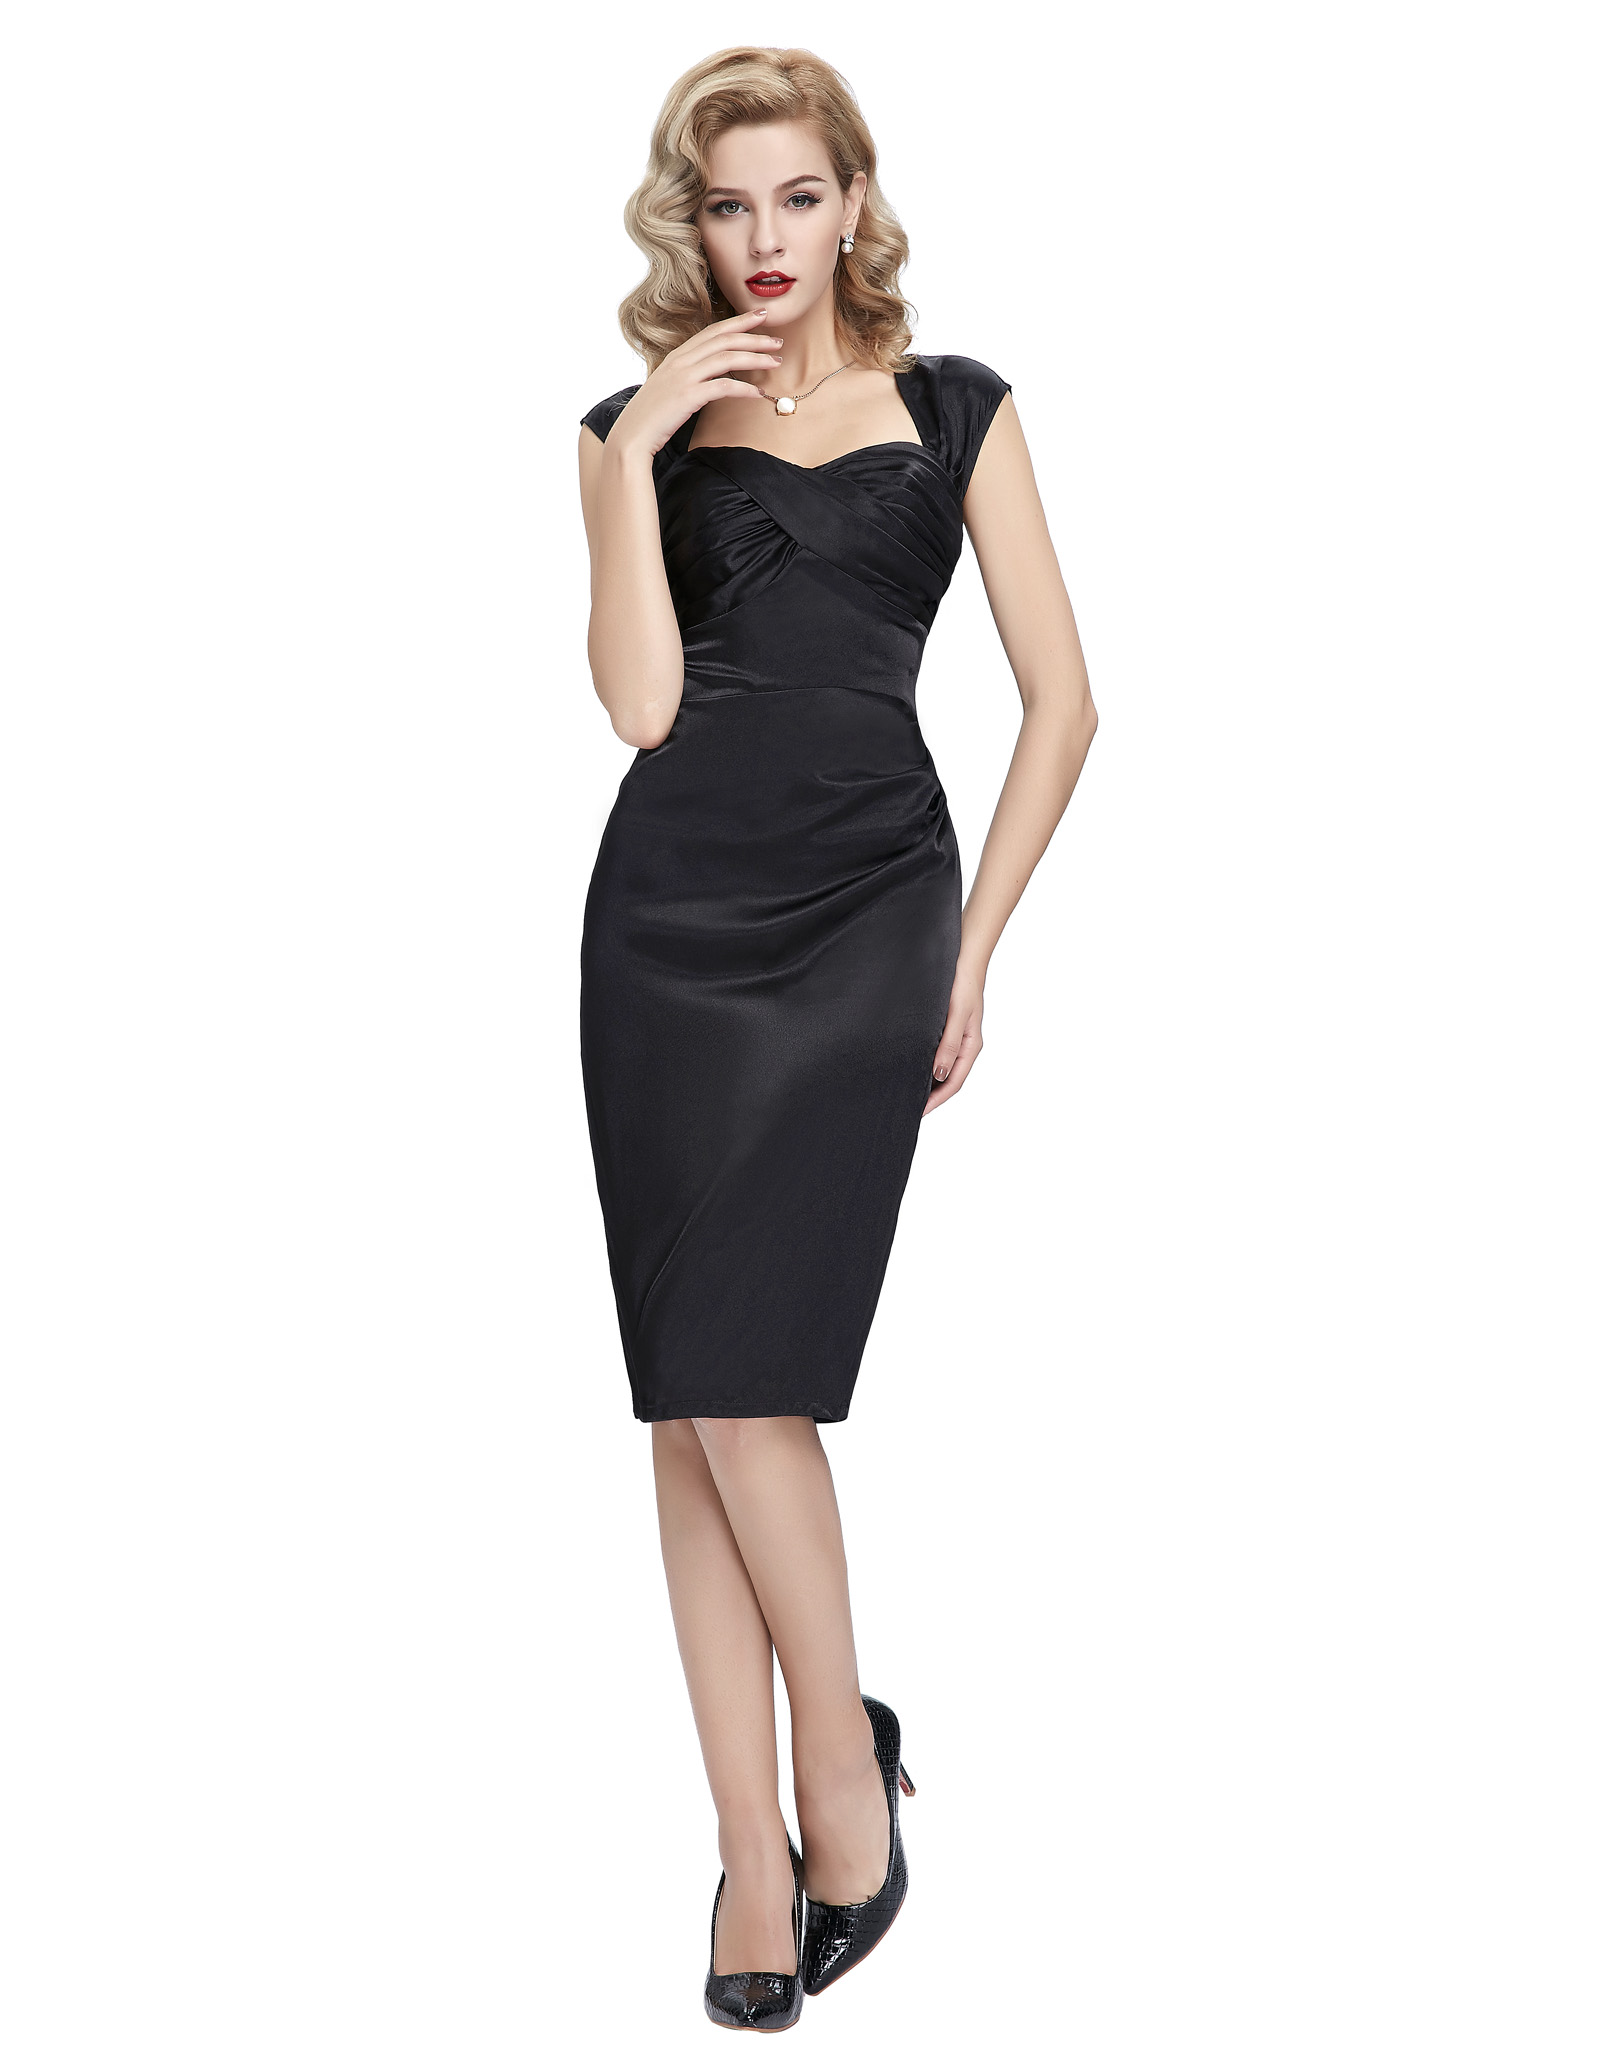 Retro Vintage Style 40s 1950s Bodycon Pin Up Evening Party Wiggle Pencil Dress